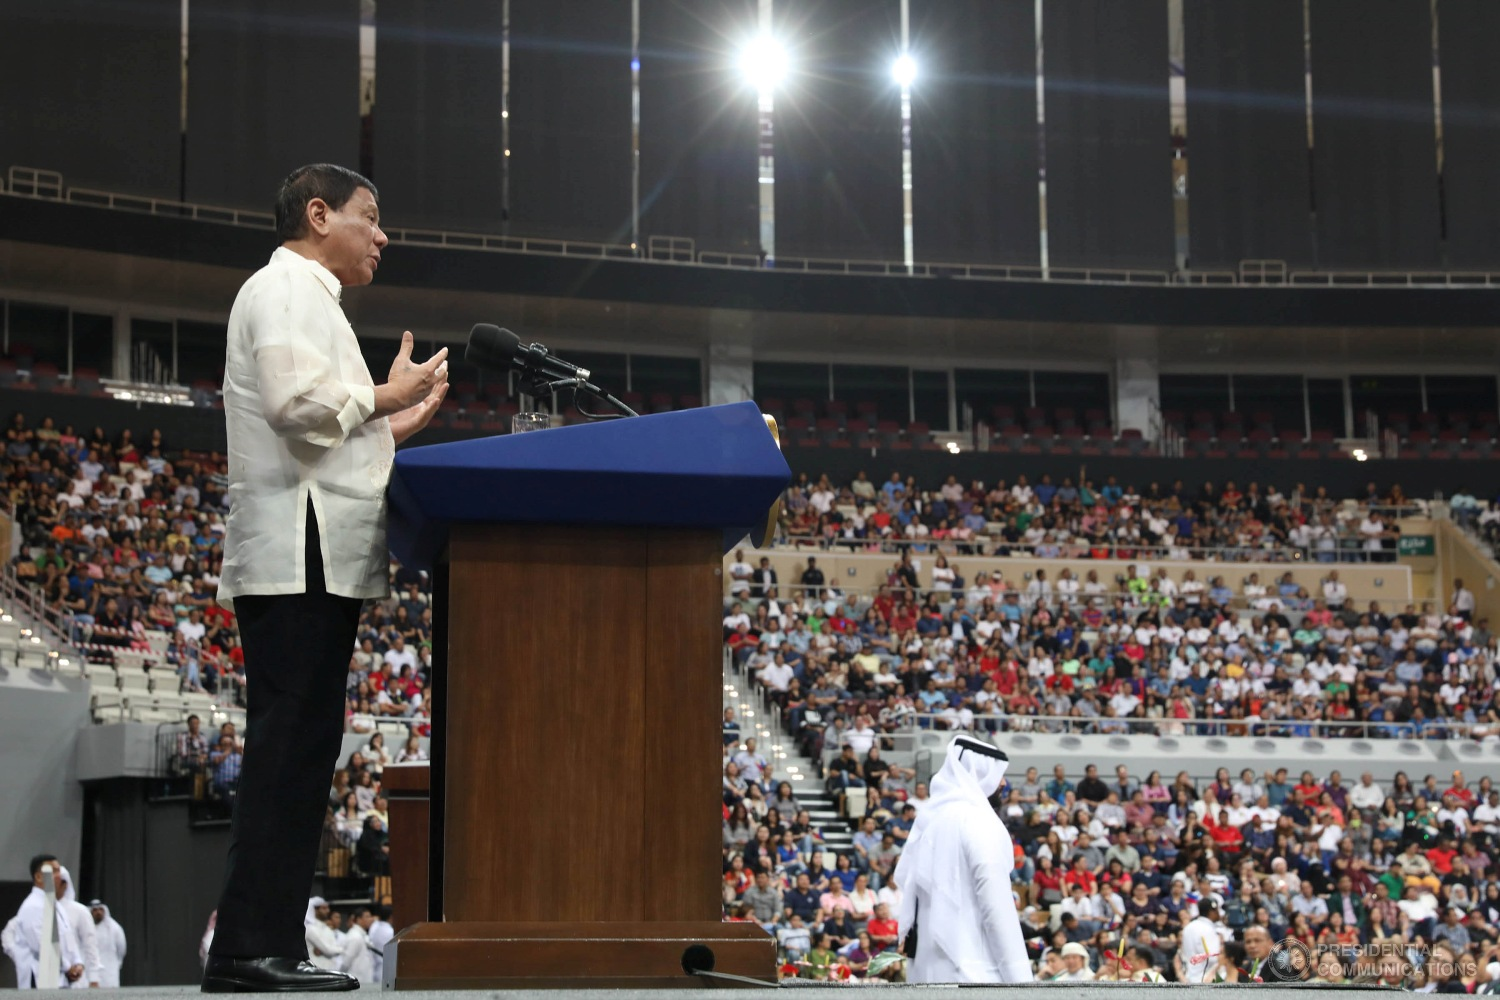 """The offer of the President was a welcome move and we thank the Commander-in-Chief for this. Hopefully, this will encourage informants and other concerned citizens to help expedite the arrests of these bandits,"" Padilla said. (Photo: TOTO LOZANO/Presidential Photo)"